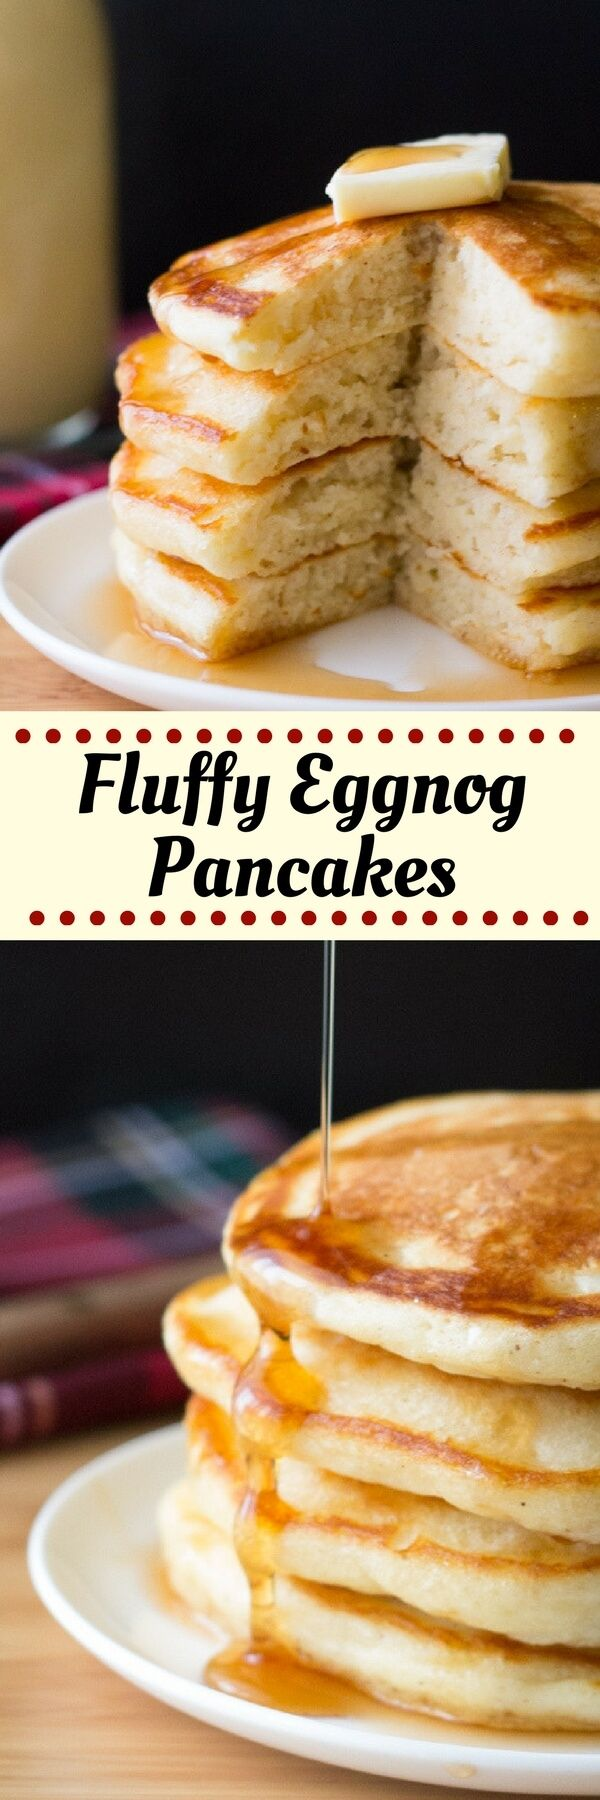 These thick, fluffy Eggnog Pancakes are the perfect for holiday breakfast for eggnog lovers. Don't wait til Christmas for these delicious pancakes! #eggnogpancakes #eggnog #pancakes